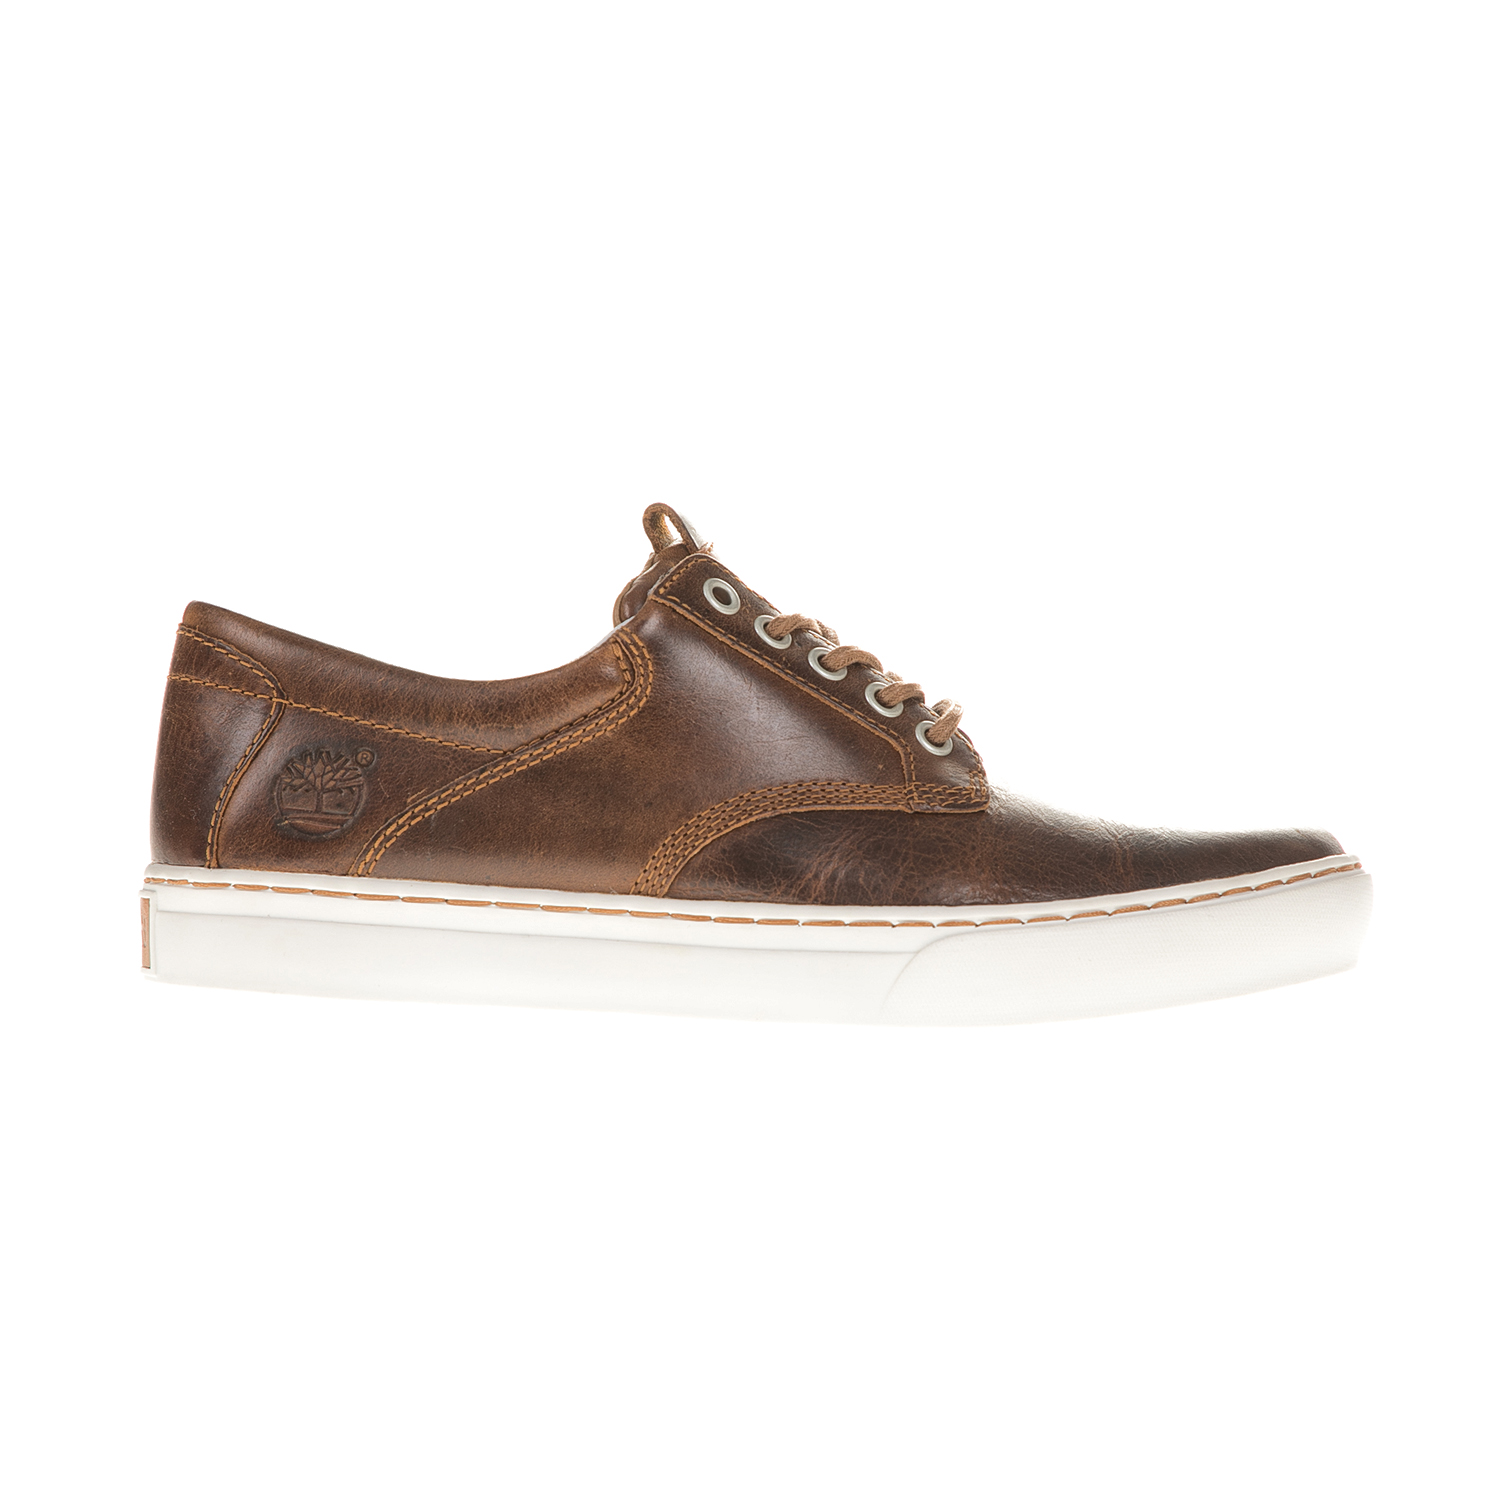 TIMBERLAND – Ανδρικά sneakers TIMBERLAND 2.0 CUPSOLE καφέ